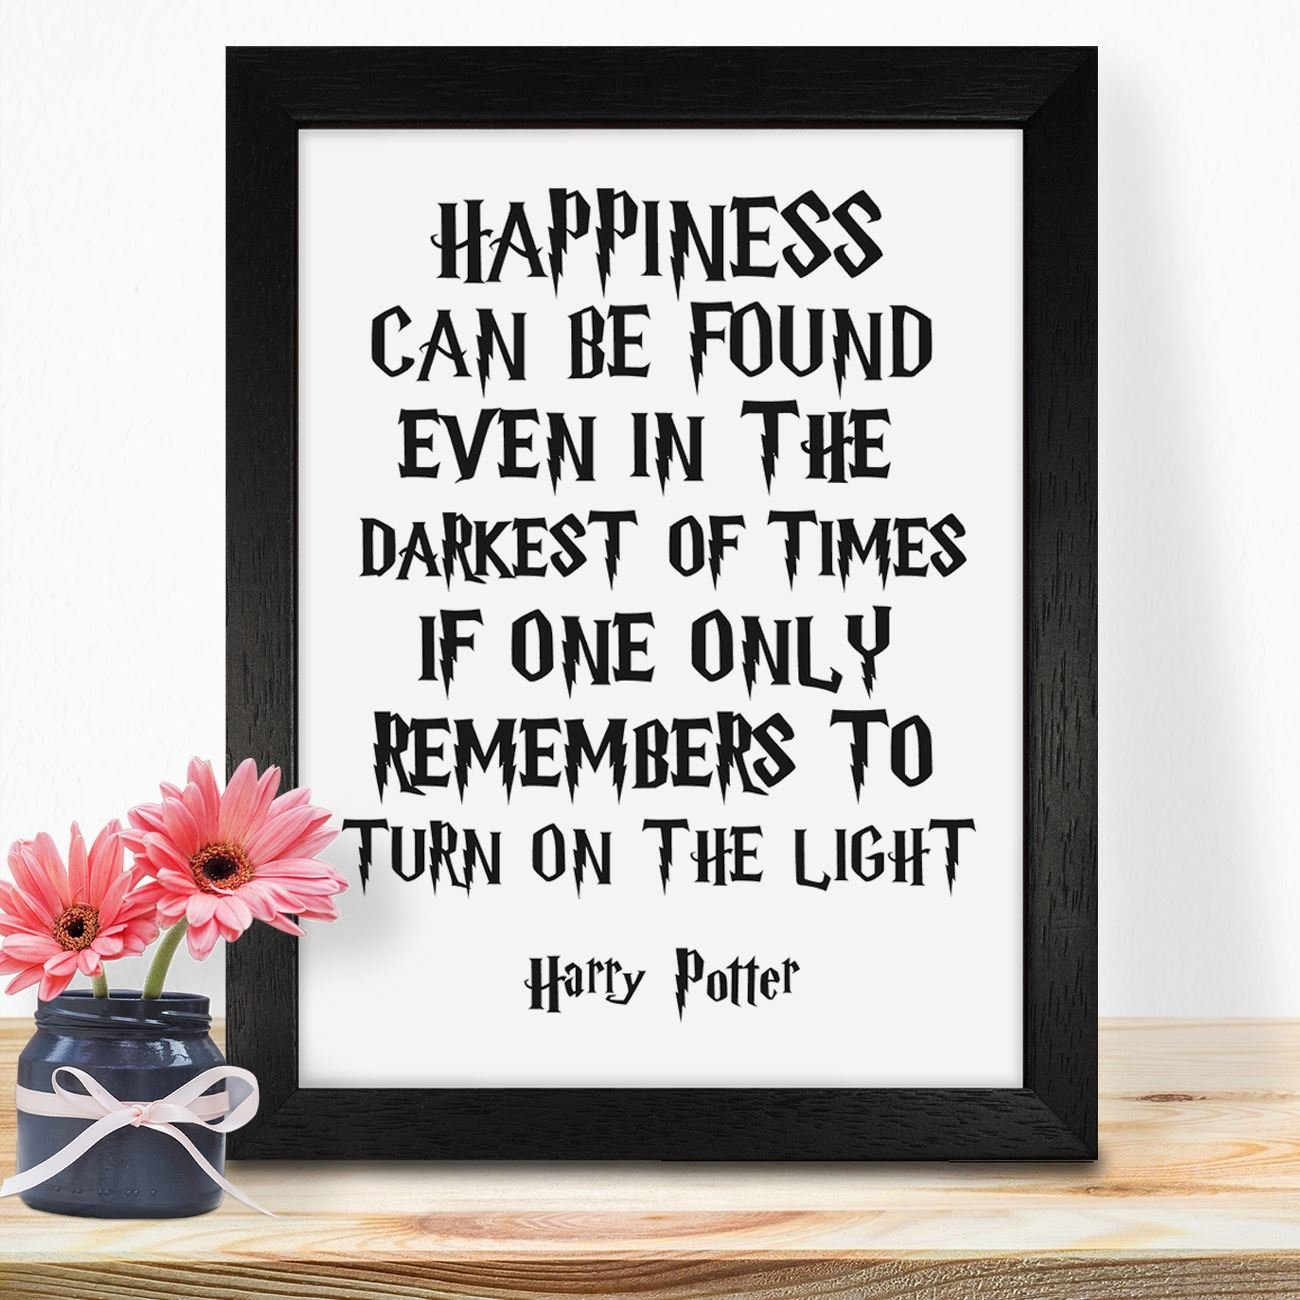 Harry Potter Gifts For Her Girls Kids Boys Women Girlfriend Children Adults Christmas Birthday Xmas Anniversary Handmade Housewarming Quotes Unique Room Decorations Ideas Happiness Can Be Found Print